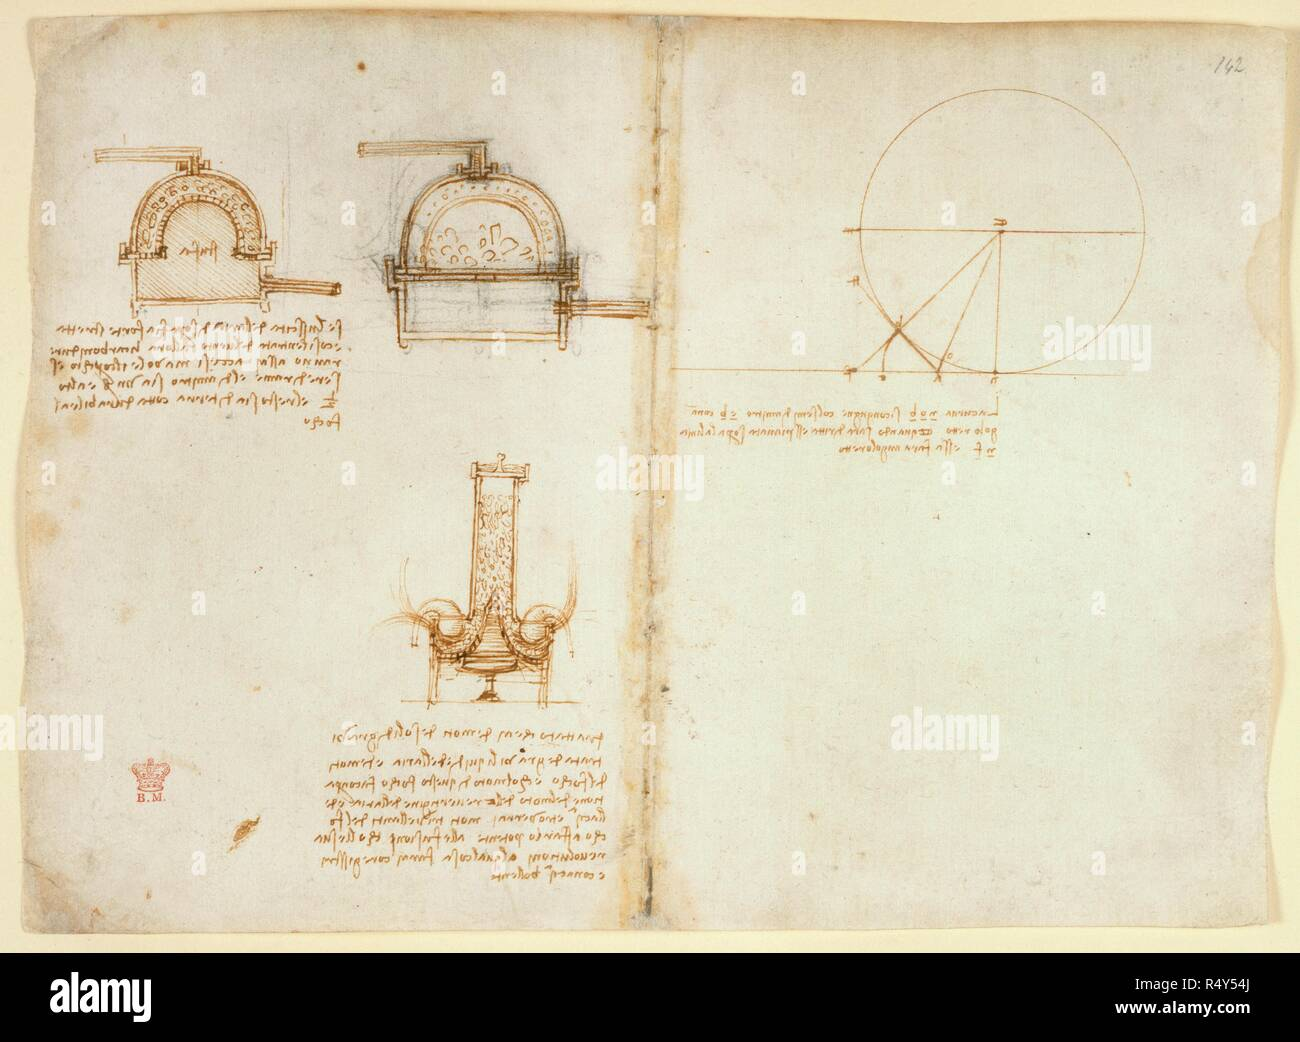 Drawings By Leonardo Da Vinici On The Mechanical Powers And Diagrams Of Forces Percussion Gravity Motion Optics Astronomy With Various Arithmetical